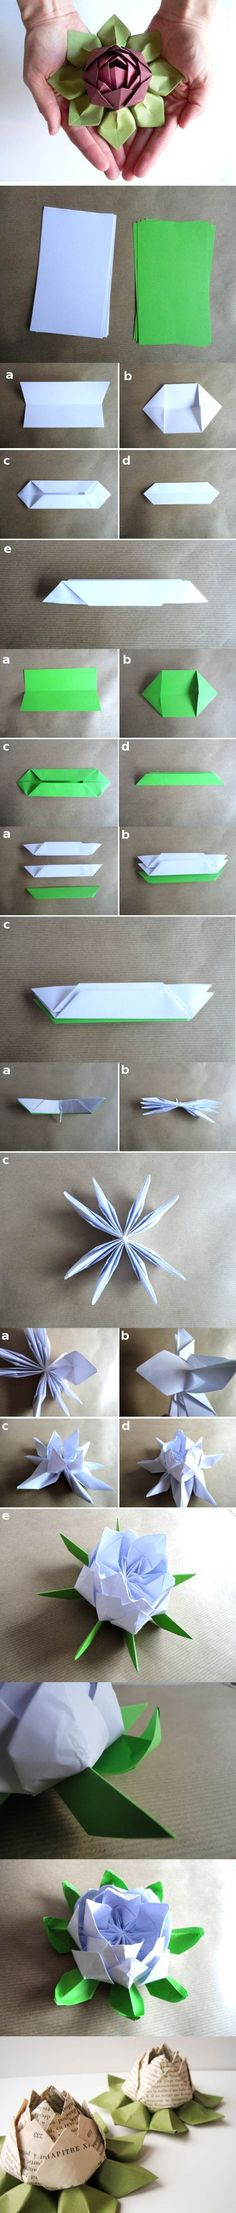 Best Origami Tutorials – Origami Lotus Flower – Simple DIY Origami Tutorial Project - Crafts for adult Diy Origami, Origami Simple, Origami And Kirigami, Origami Paper Art, Useful Origami, Diy Paper, Oragami, Origami Shapes, Modular Origami